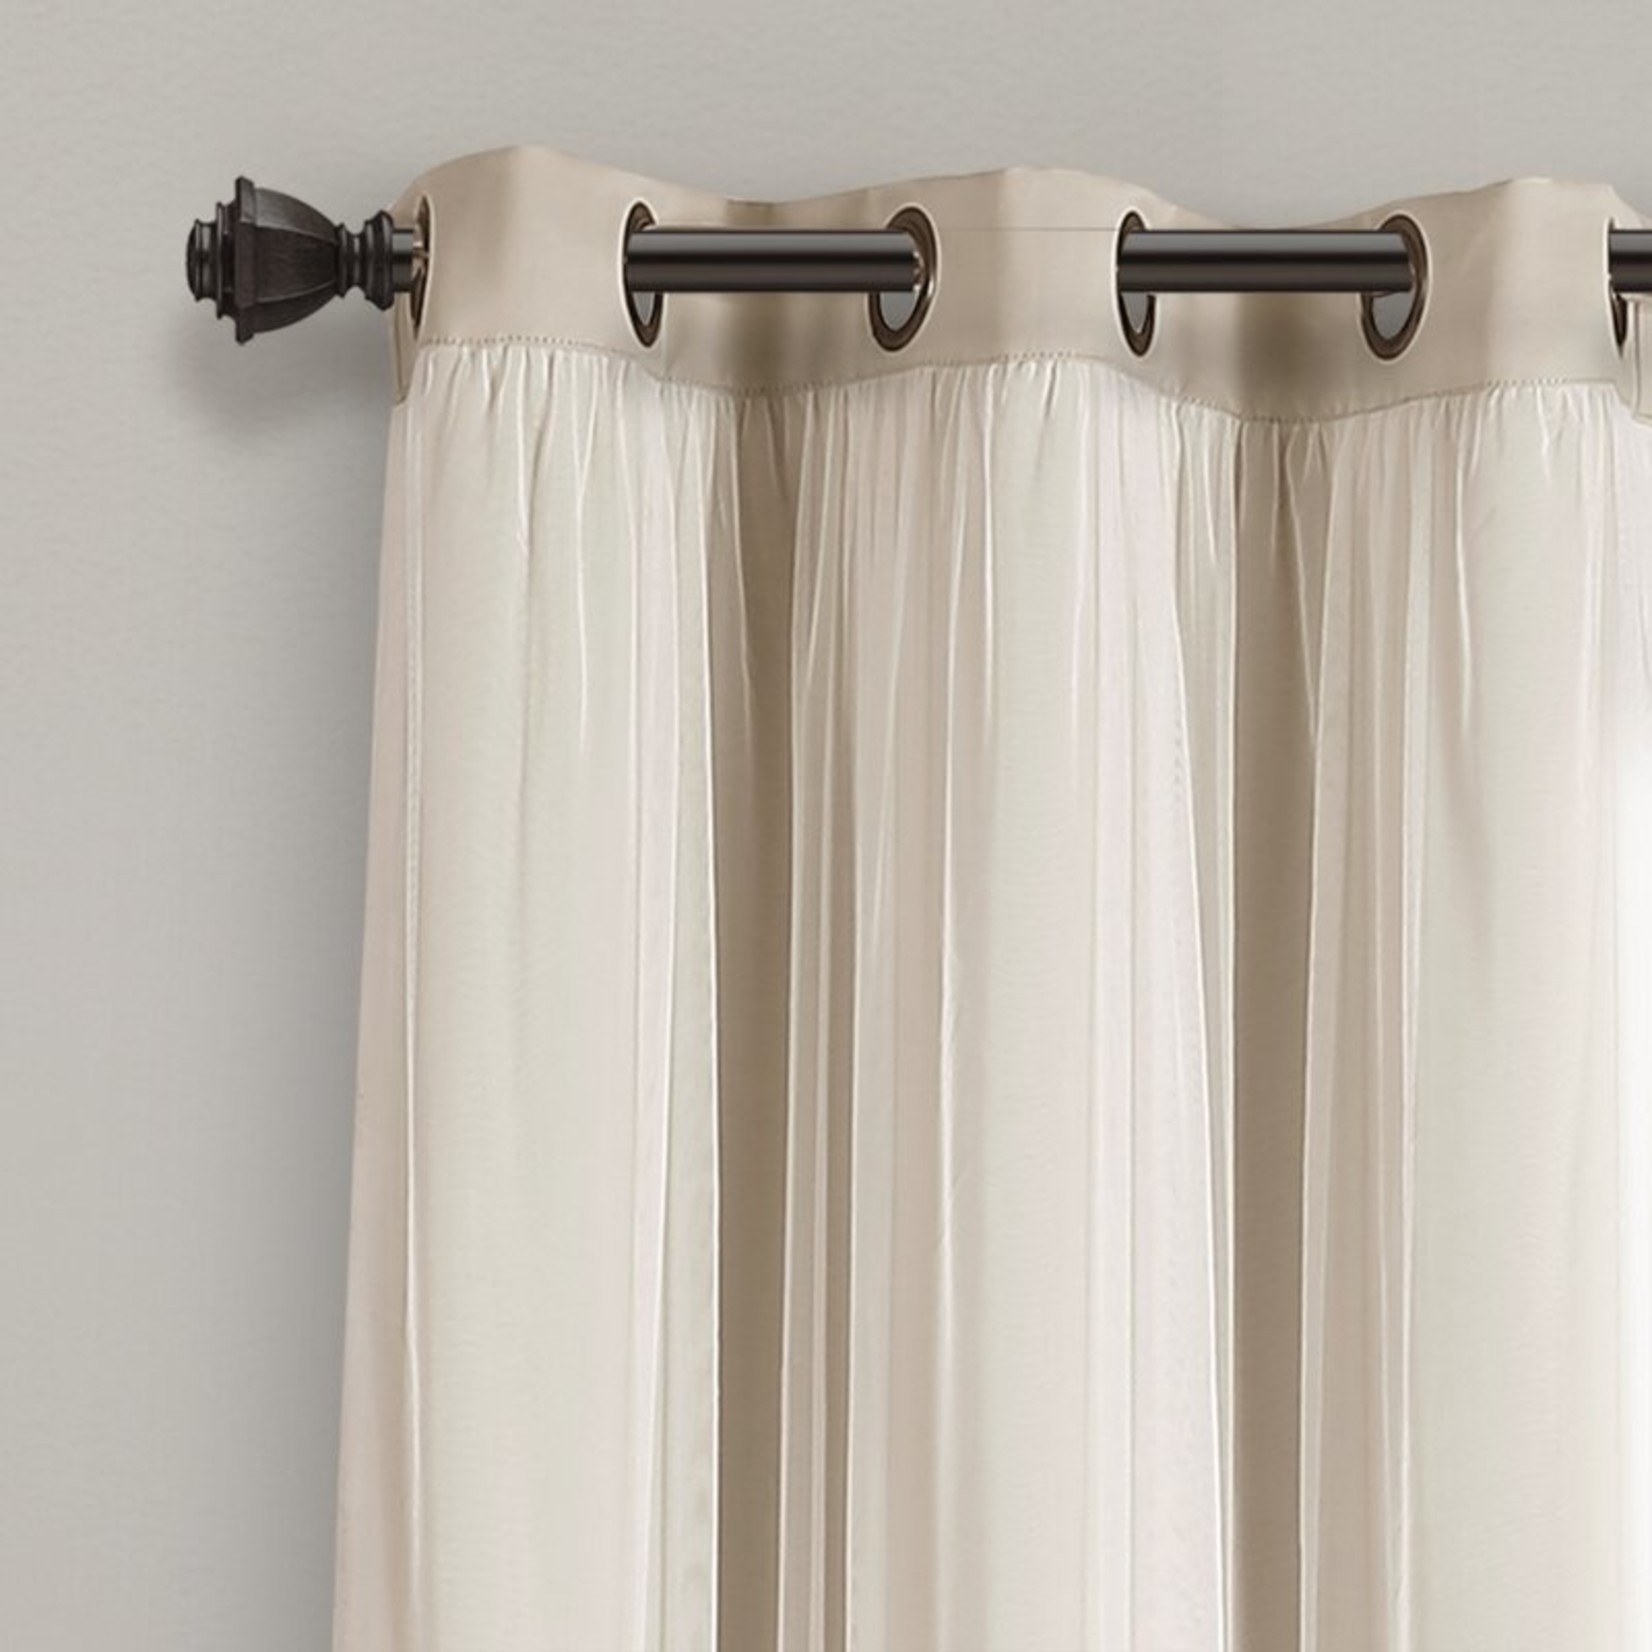 """*38"""" x 120"""" - Busselton Solid Blackout Thermal Curtain Panels - Set of 2"""